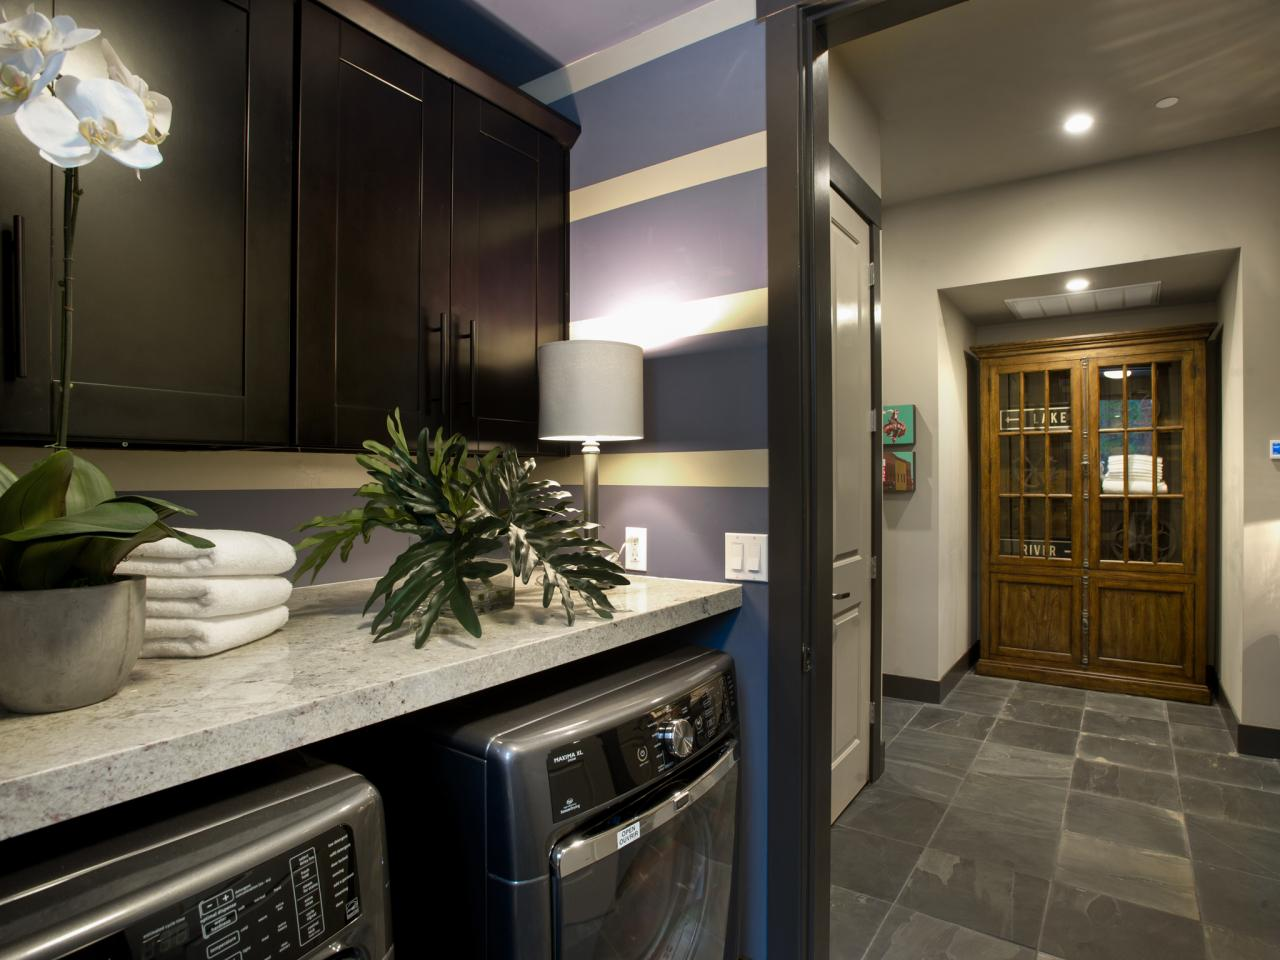 Hgtv Dream Home 2014 Laundry Room Pictures And Video